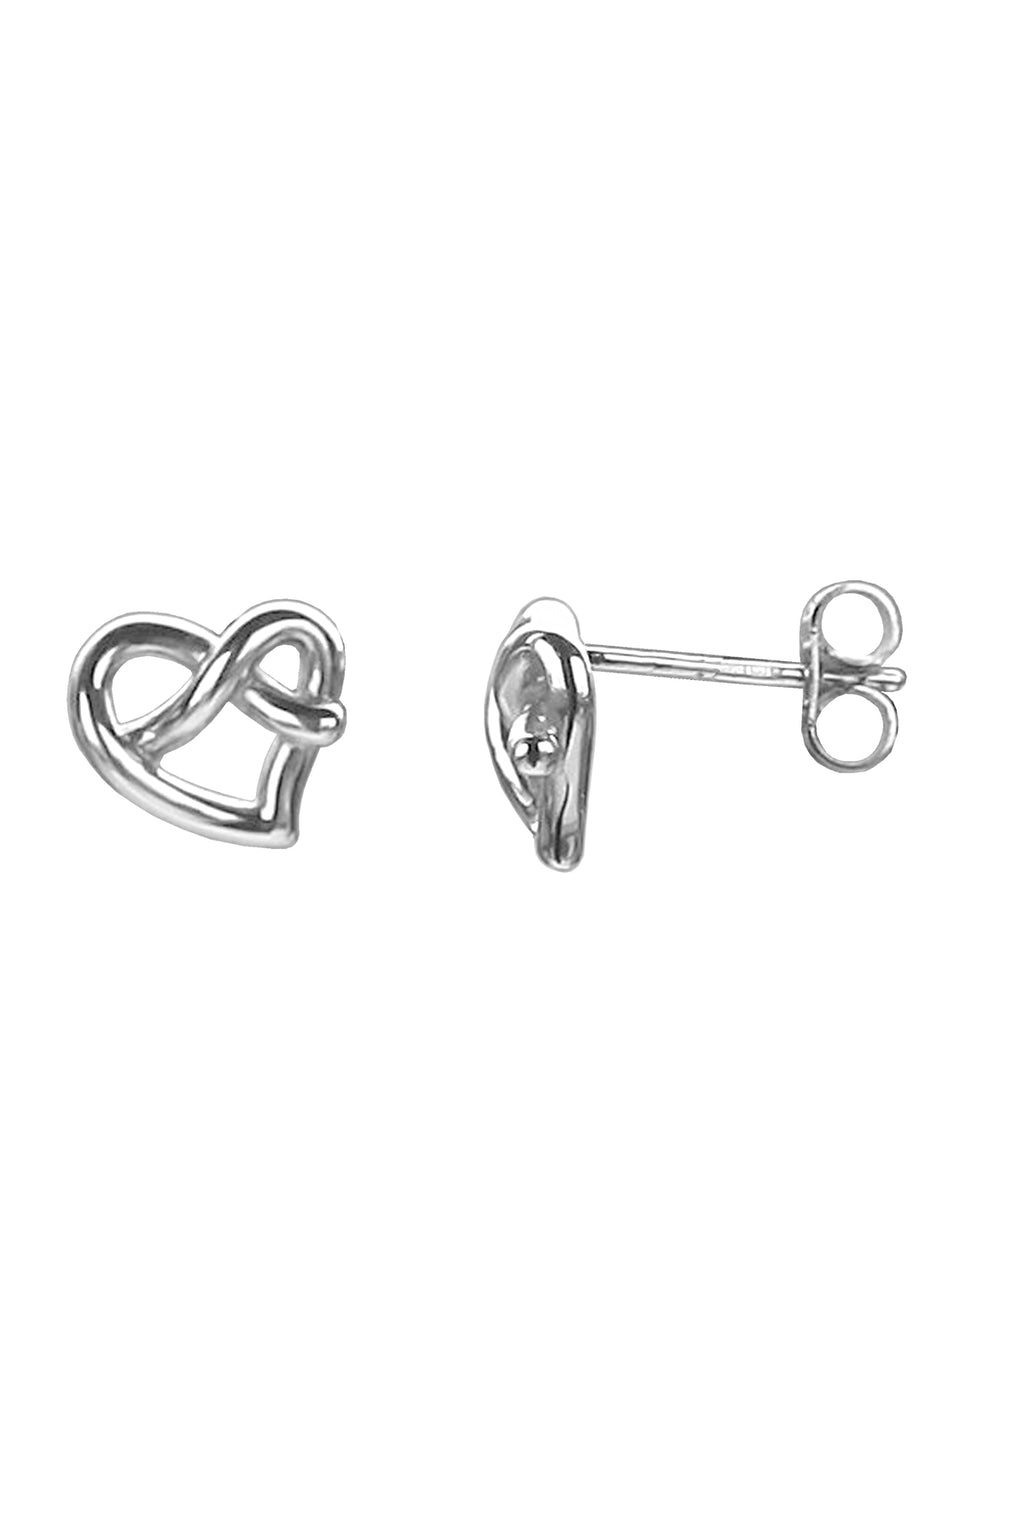 White Gold Heart Knot Stud Earrings